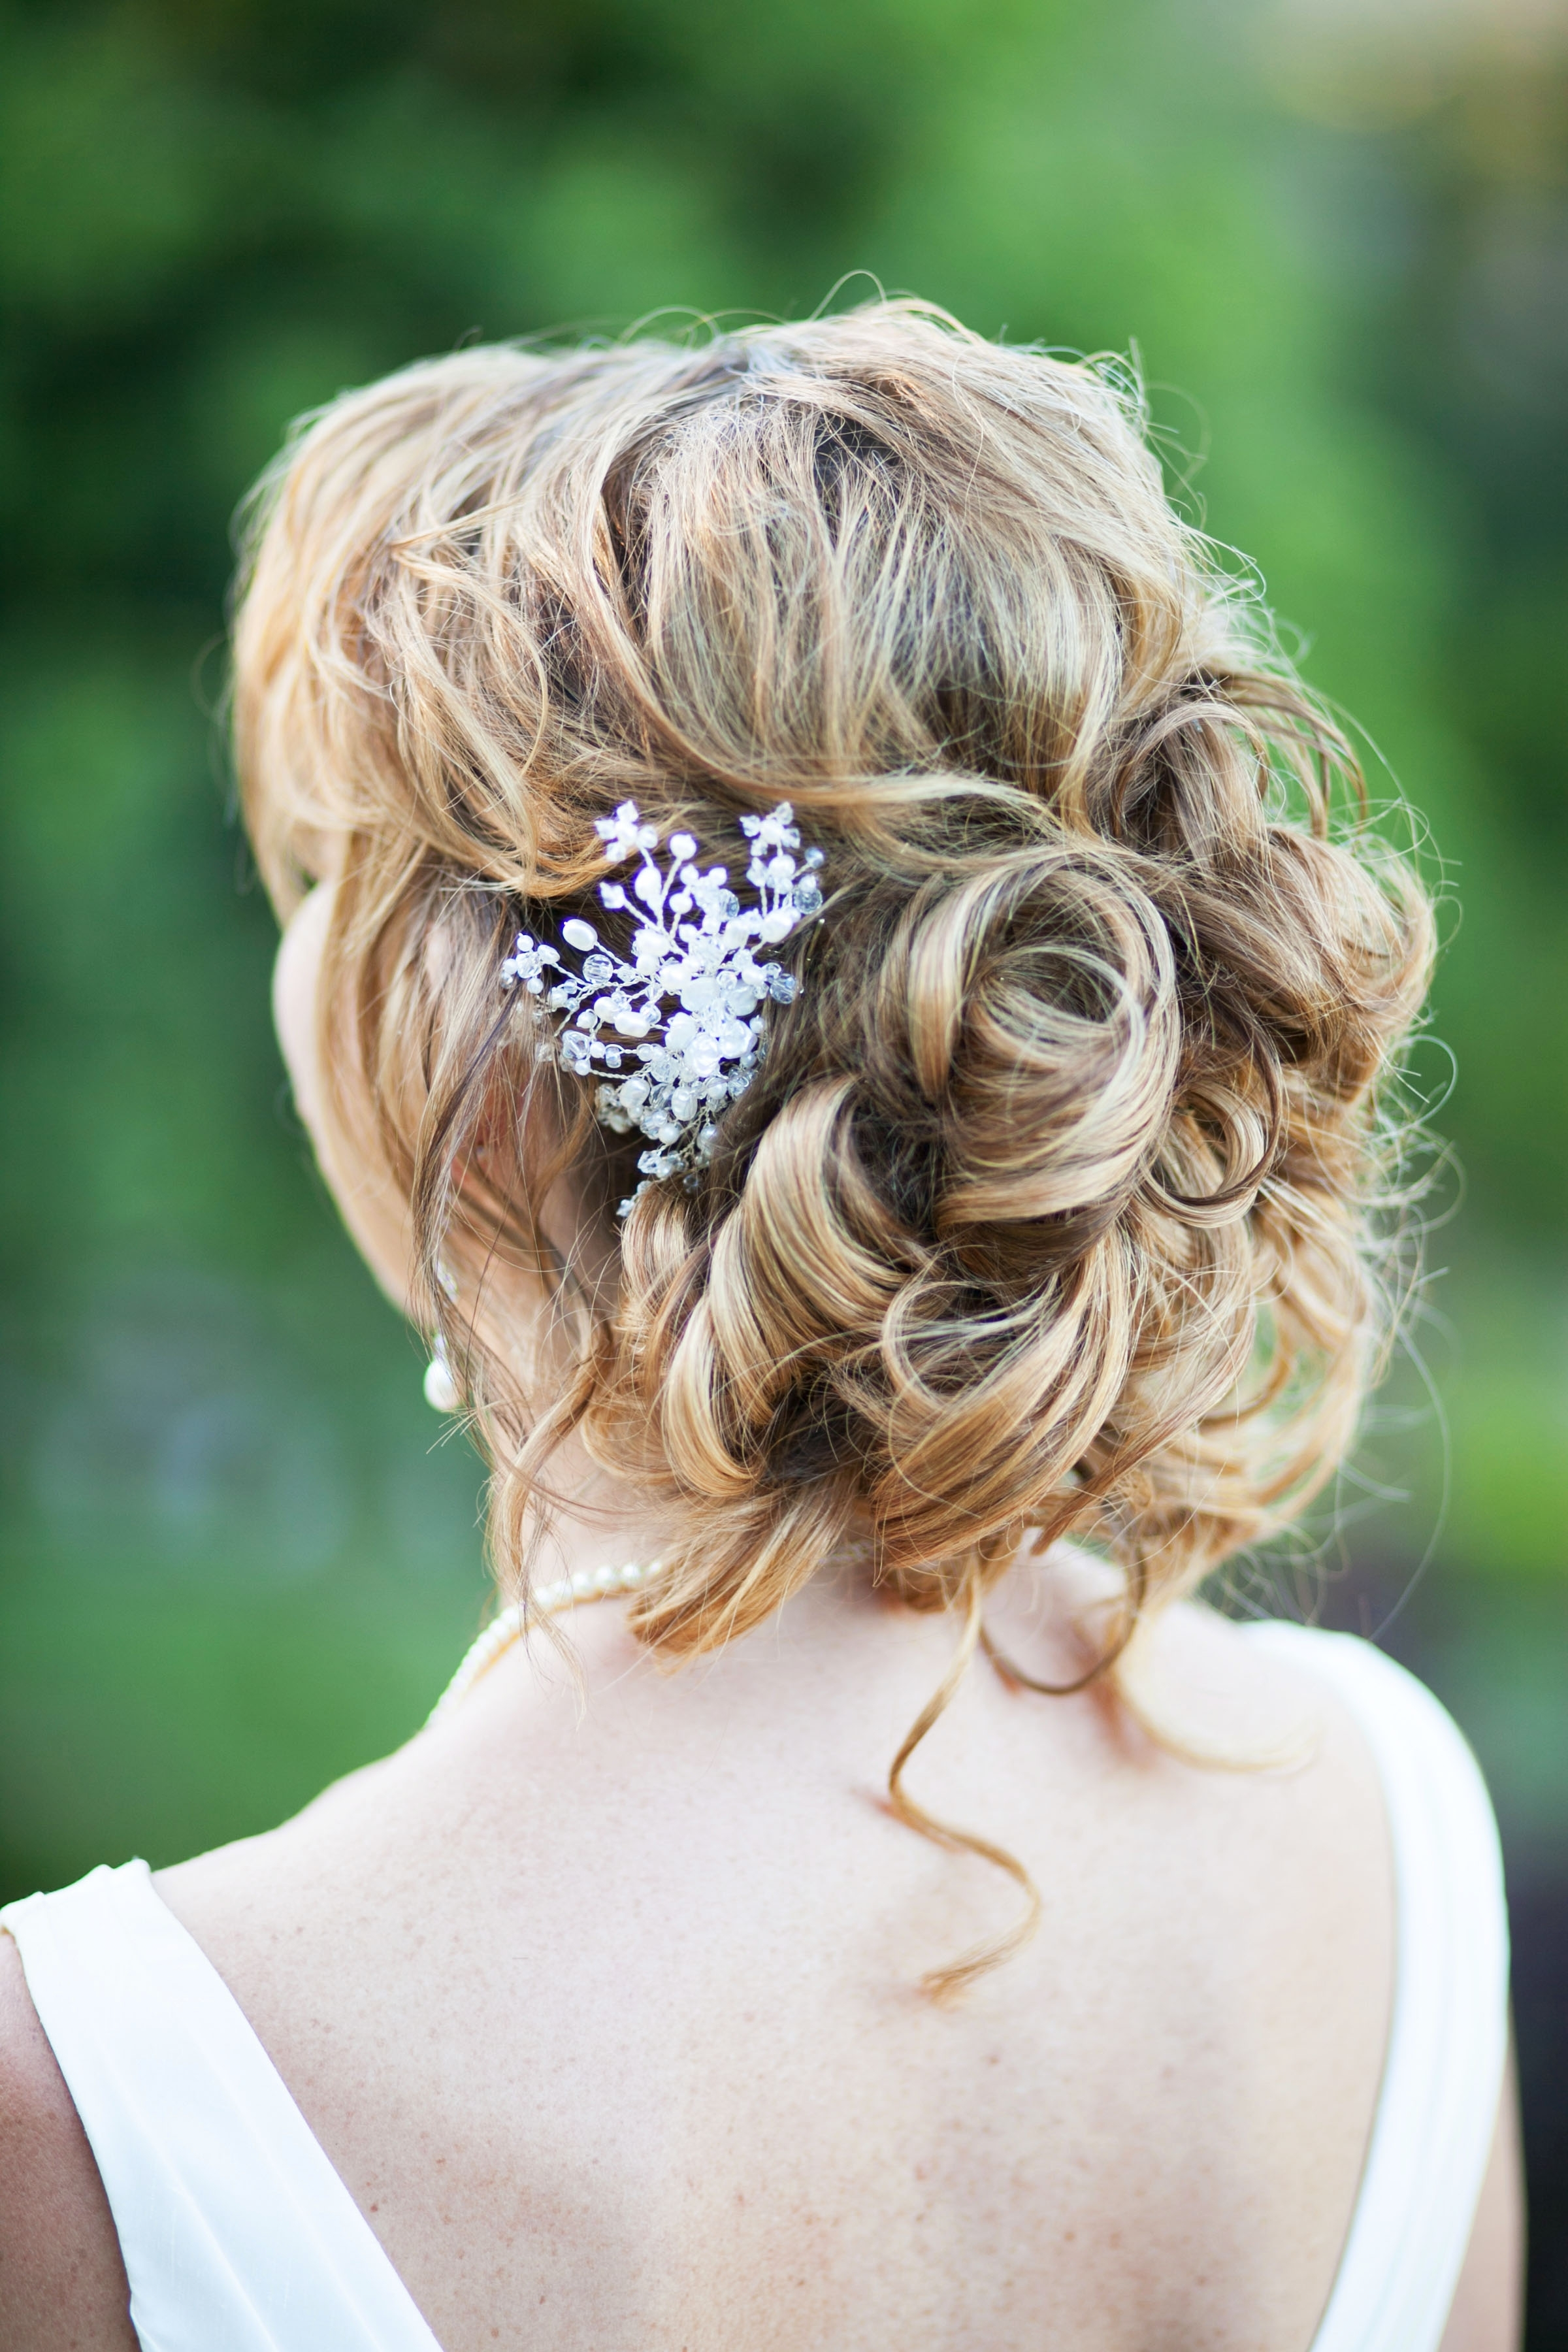 Preferred Wedding Hairstyles For Older Brides For Wedding : Backyard Weddingair Ideas Marvelous Beachyairstyle For (View 6 of 15)